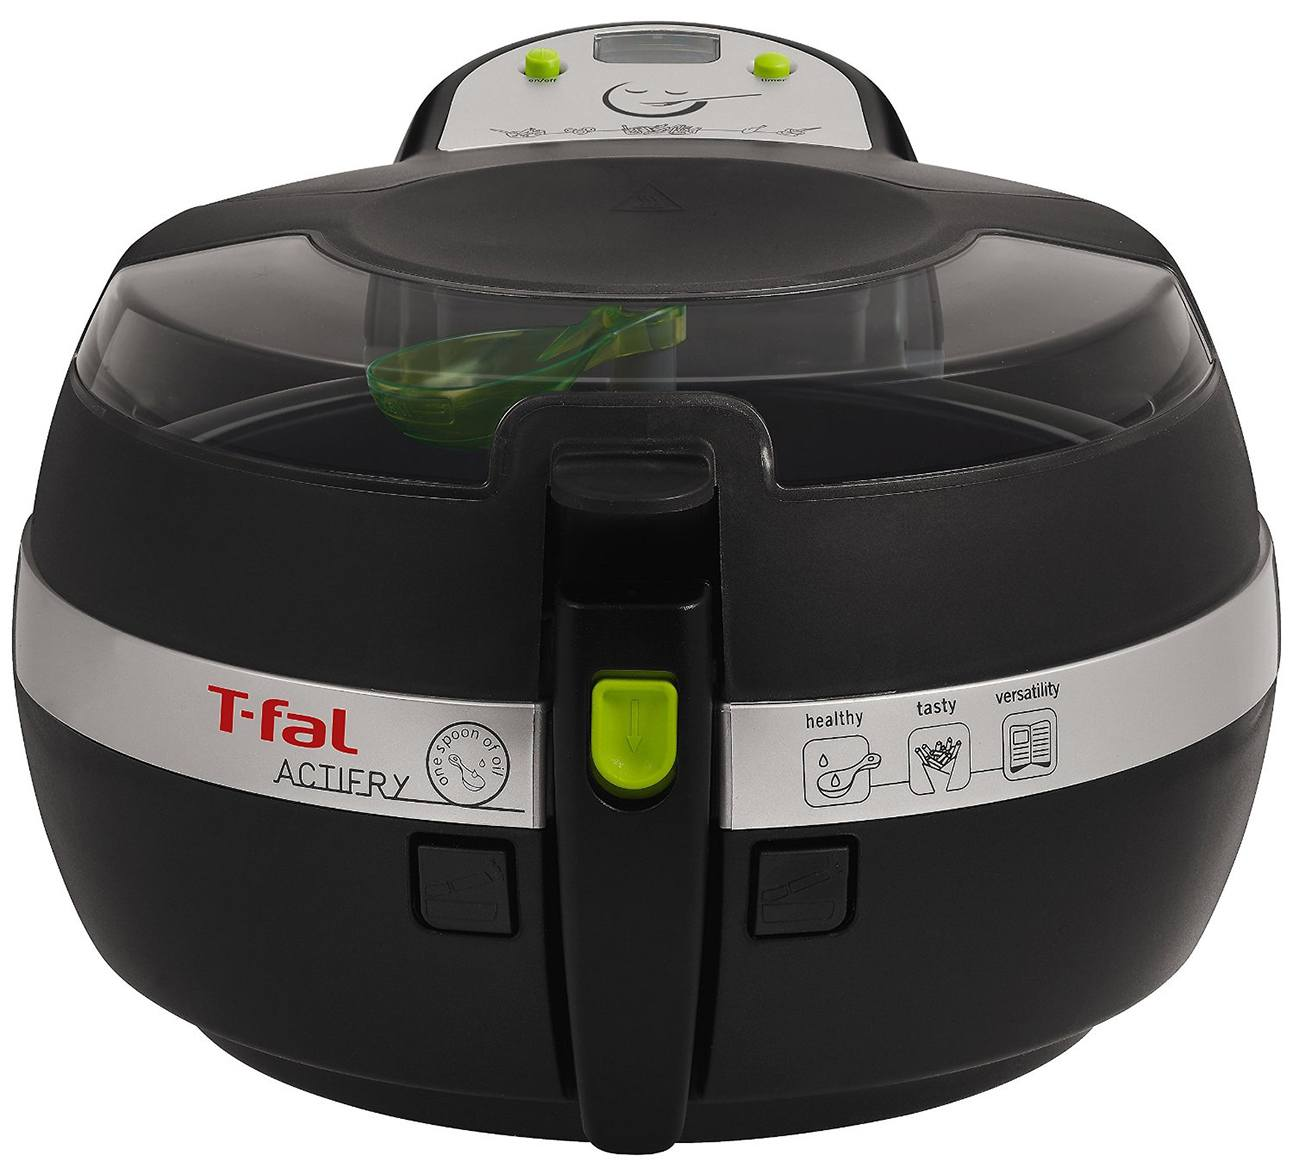 T-fal FZ7002 ActiFry AirFryer Multi Cooker